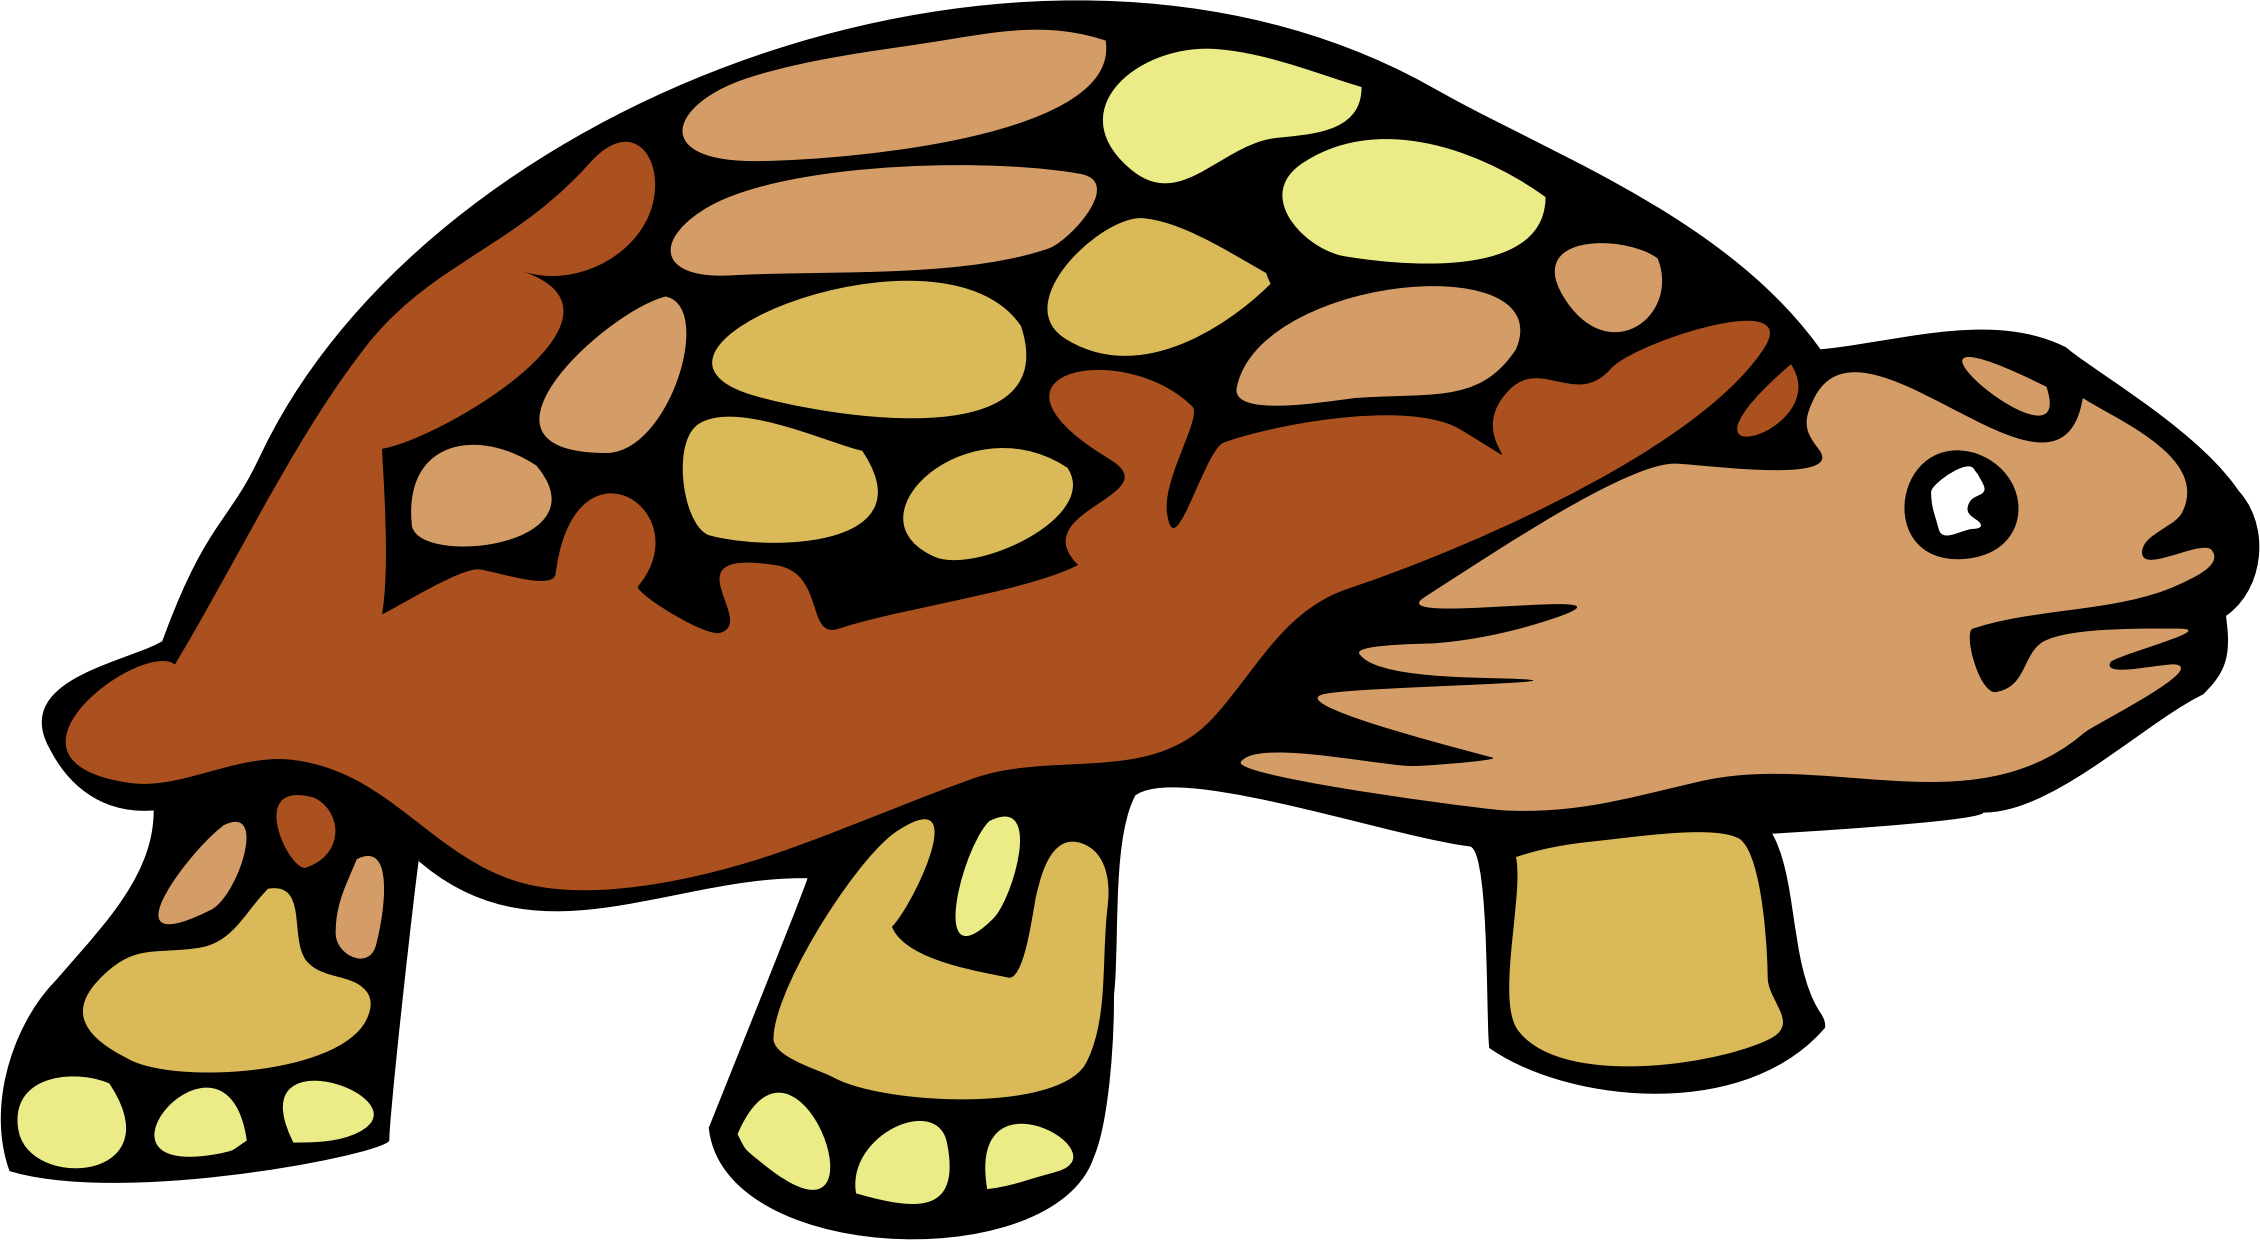 Free Tortoise Clipart Image.